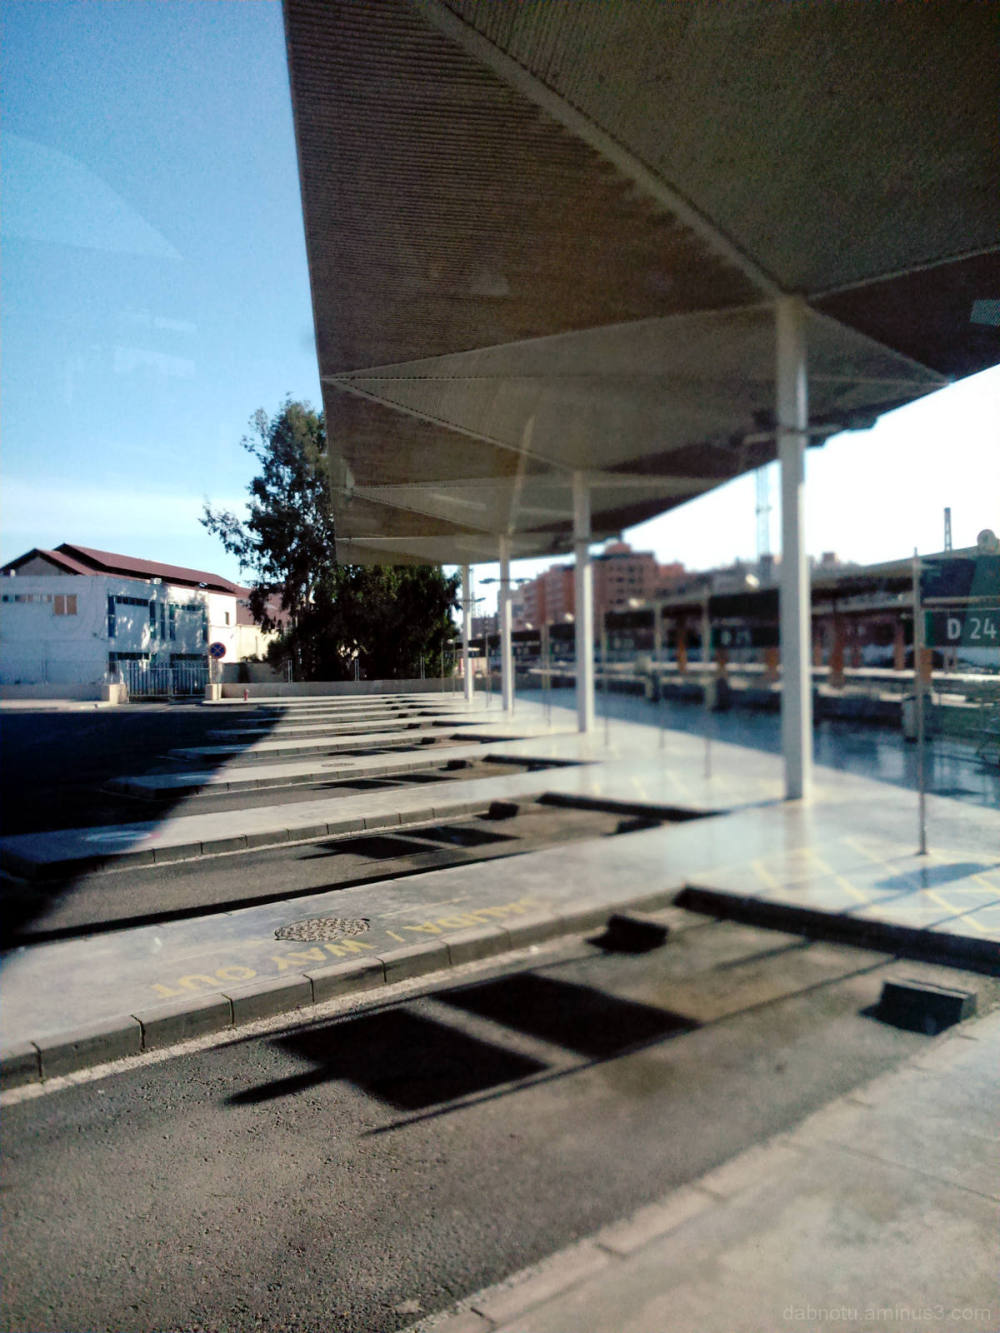 Waiting at a bus stop in Almería, Spain; view.